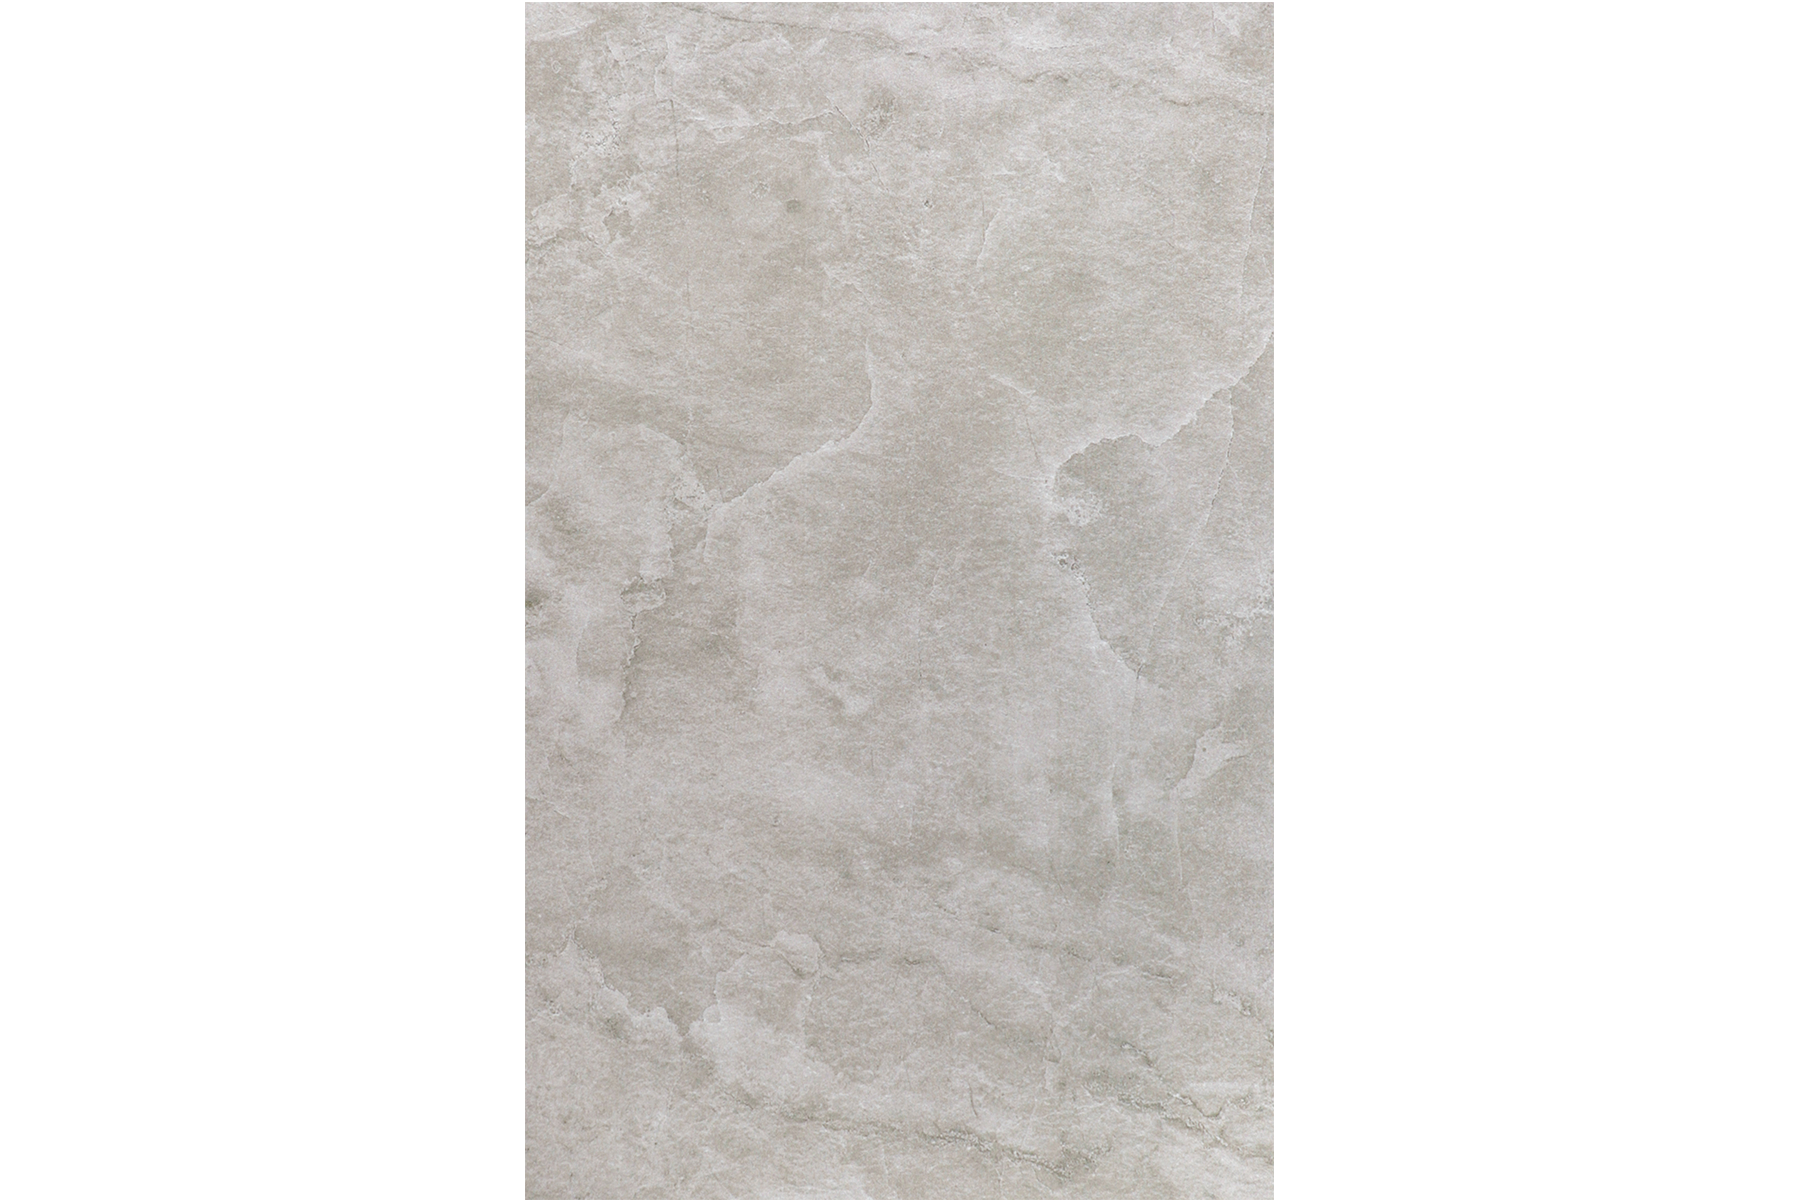 16x10 Levian Grey Ceramic Wall Tile